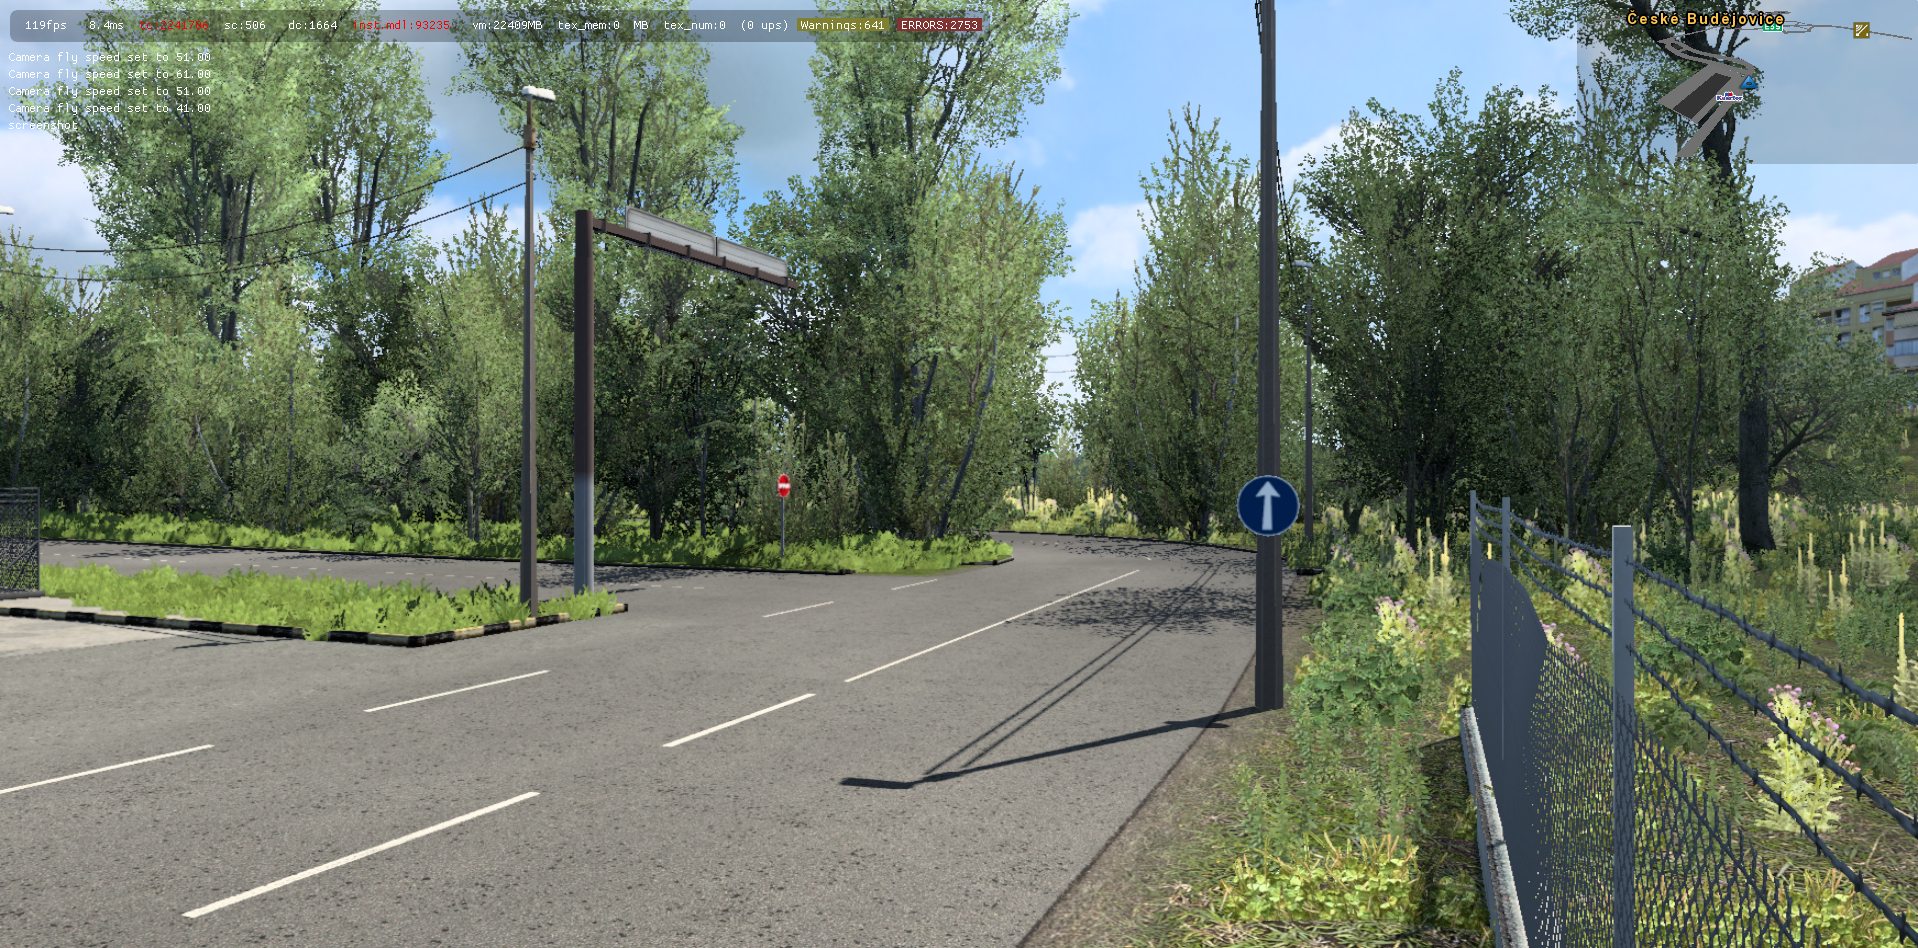 ets2_20210821_205629_00.png